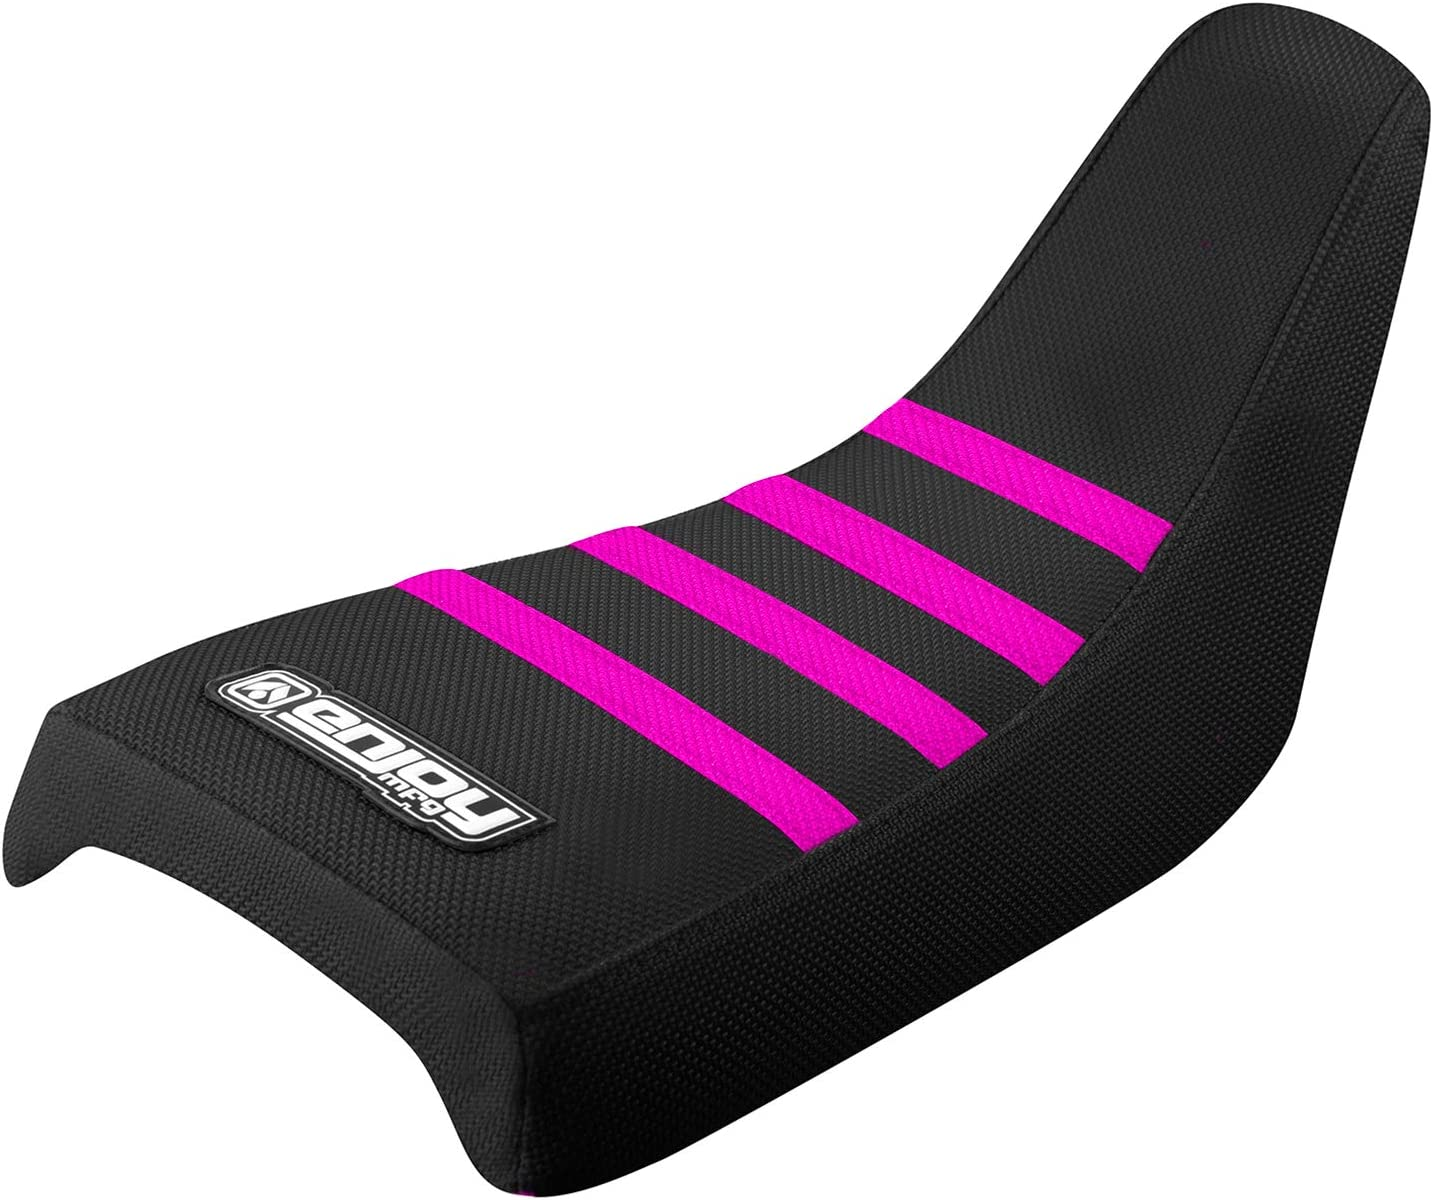 BLACK//NEON PINK YAMAHA PW 50 SEAT COVER ALL BLACK WITH RIBS GRIPPER